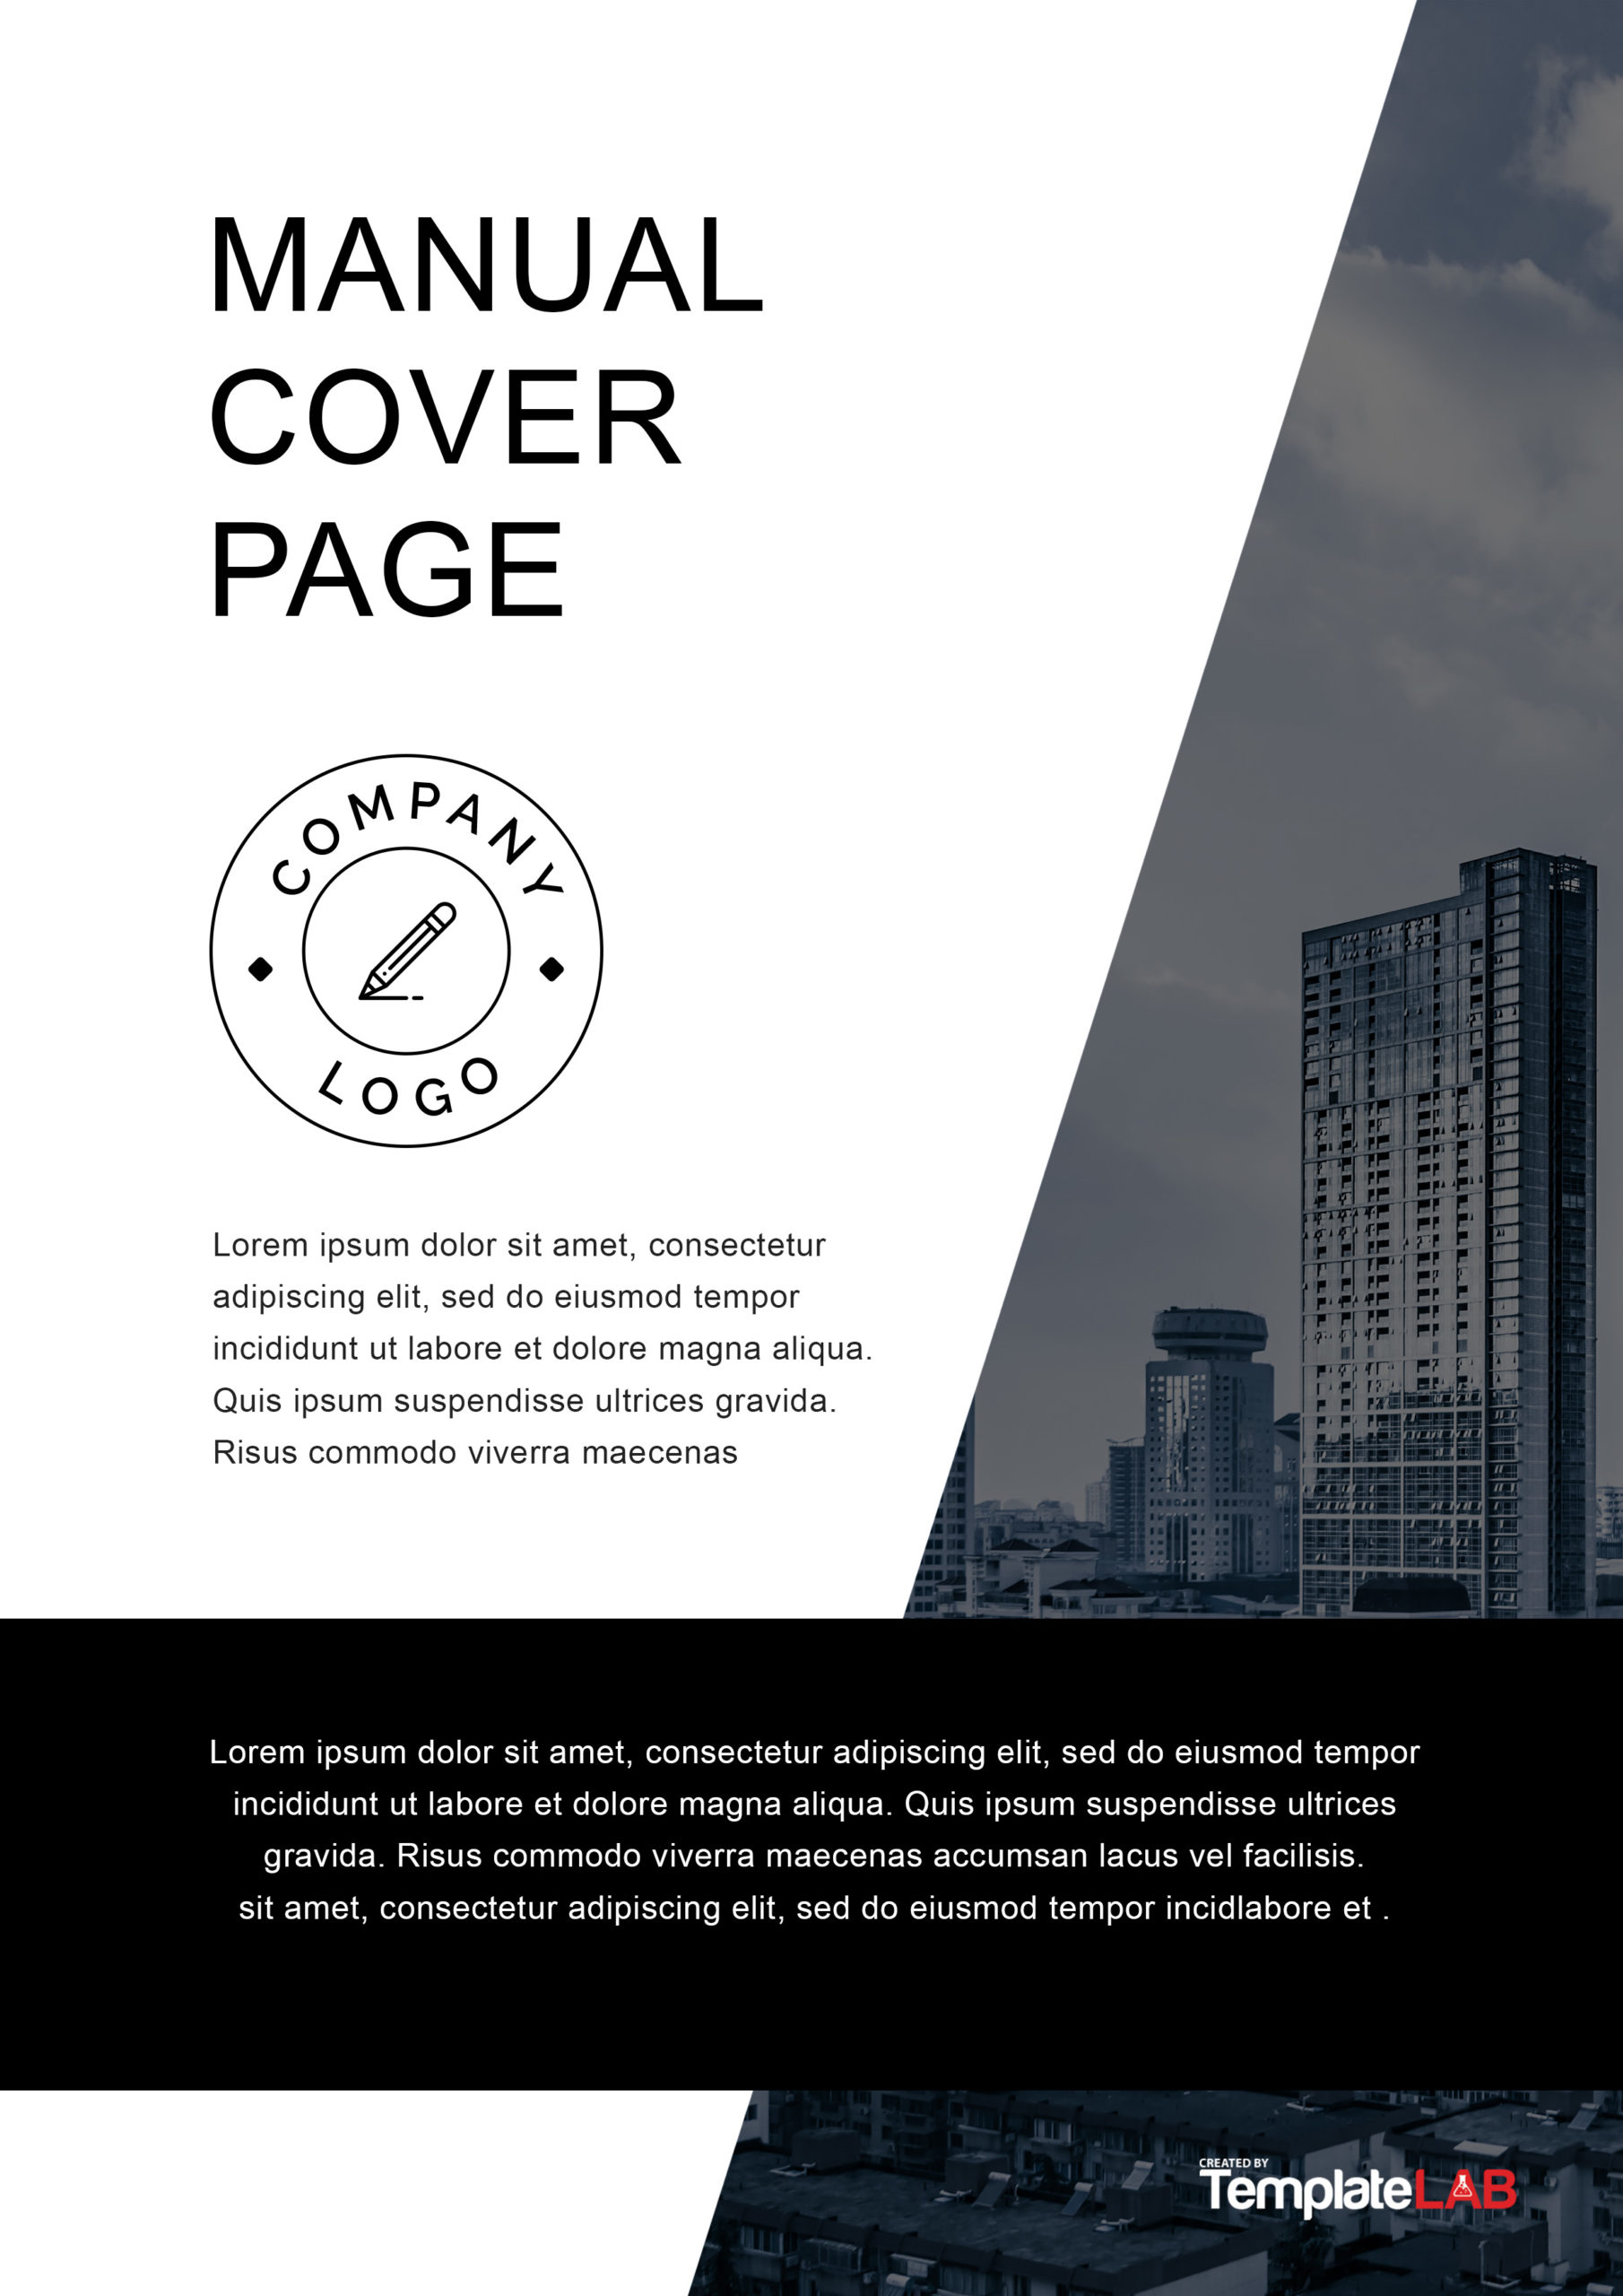 Free Manual Cover Page Template - TemplateLab.com